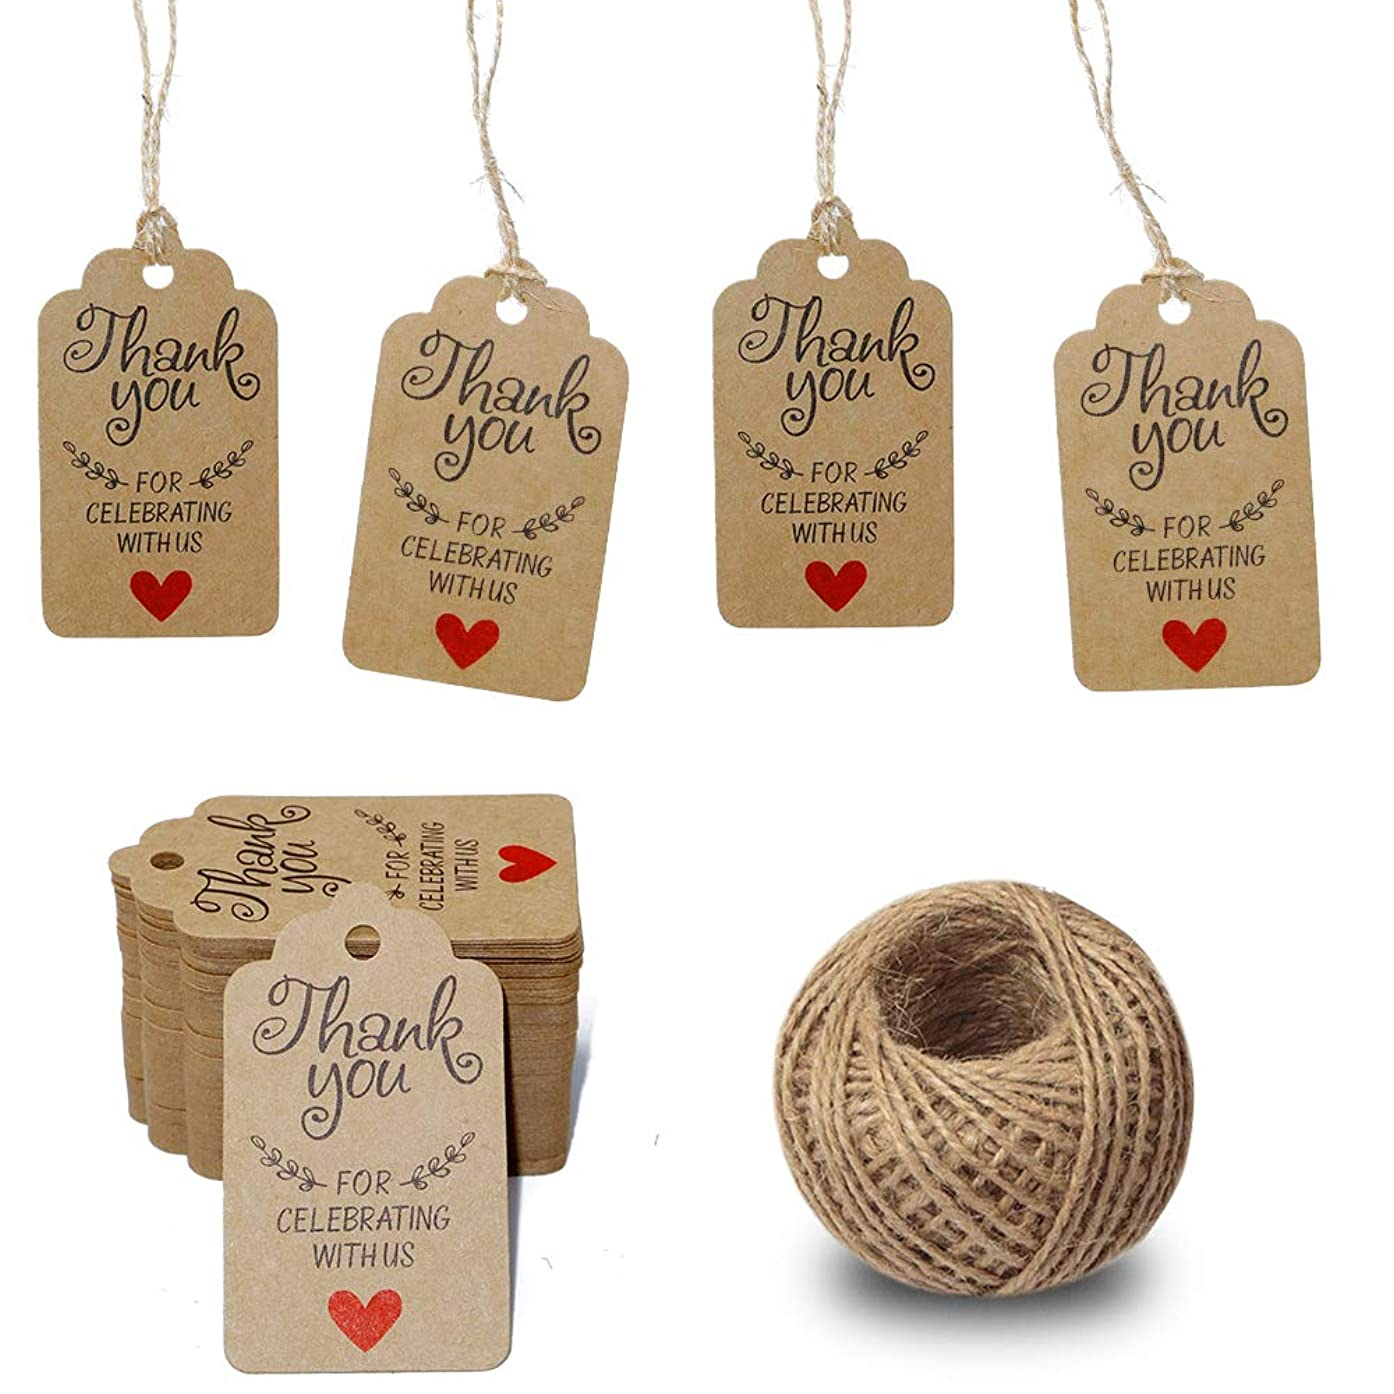 Gift Tags,Baby Shower Tags,Thank You for Celebrating with Us Tags,100 Pcs Kraft Thank You Tags for Wedding Party Favors Thanksgiving with 100 Feet Natural Jute Twine,Brown